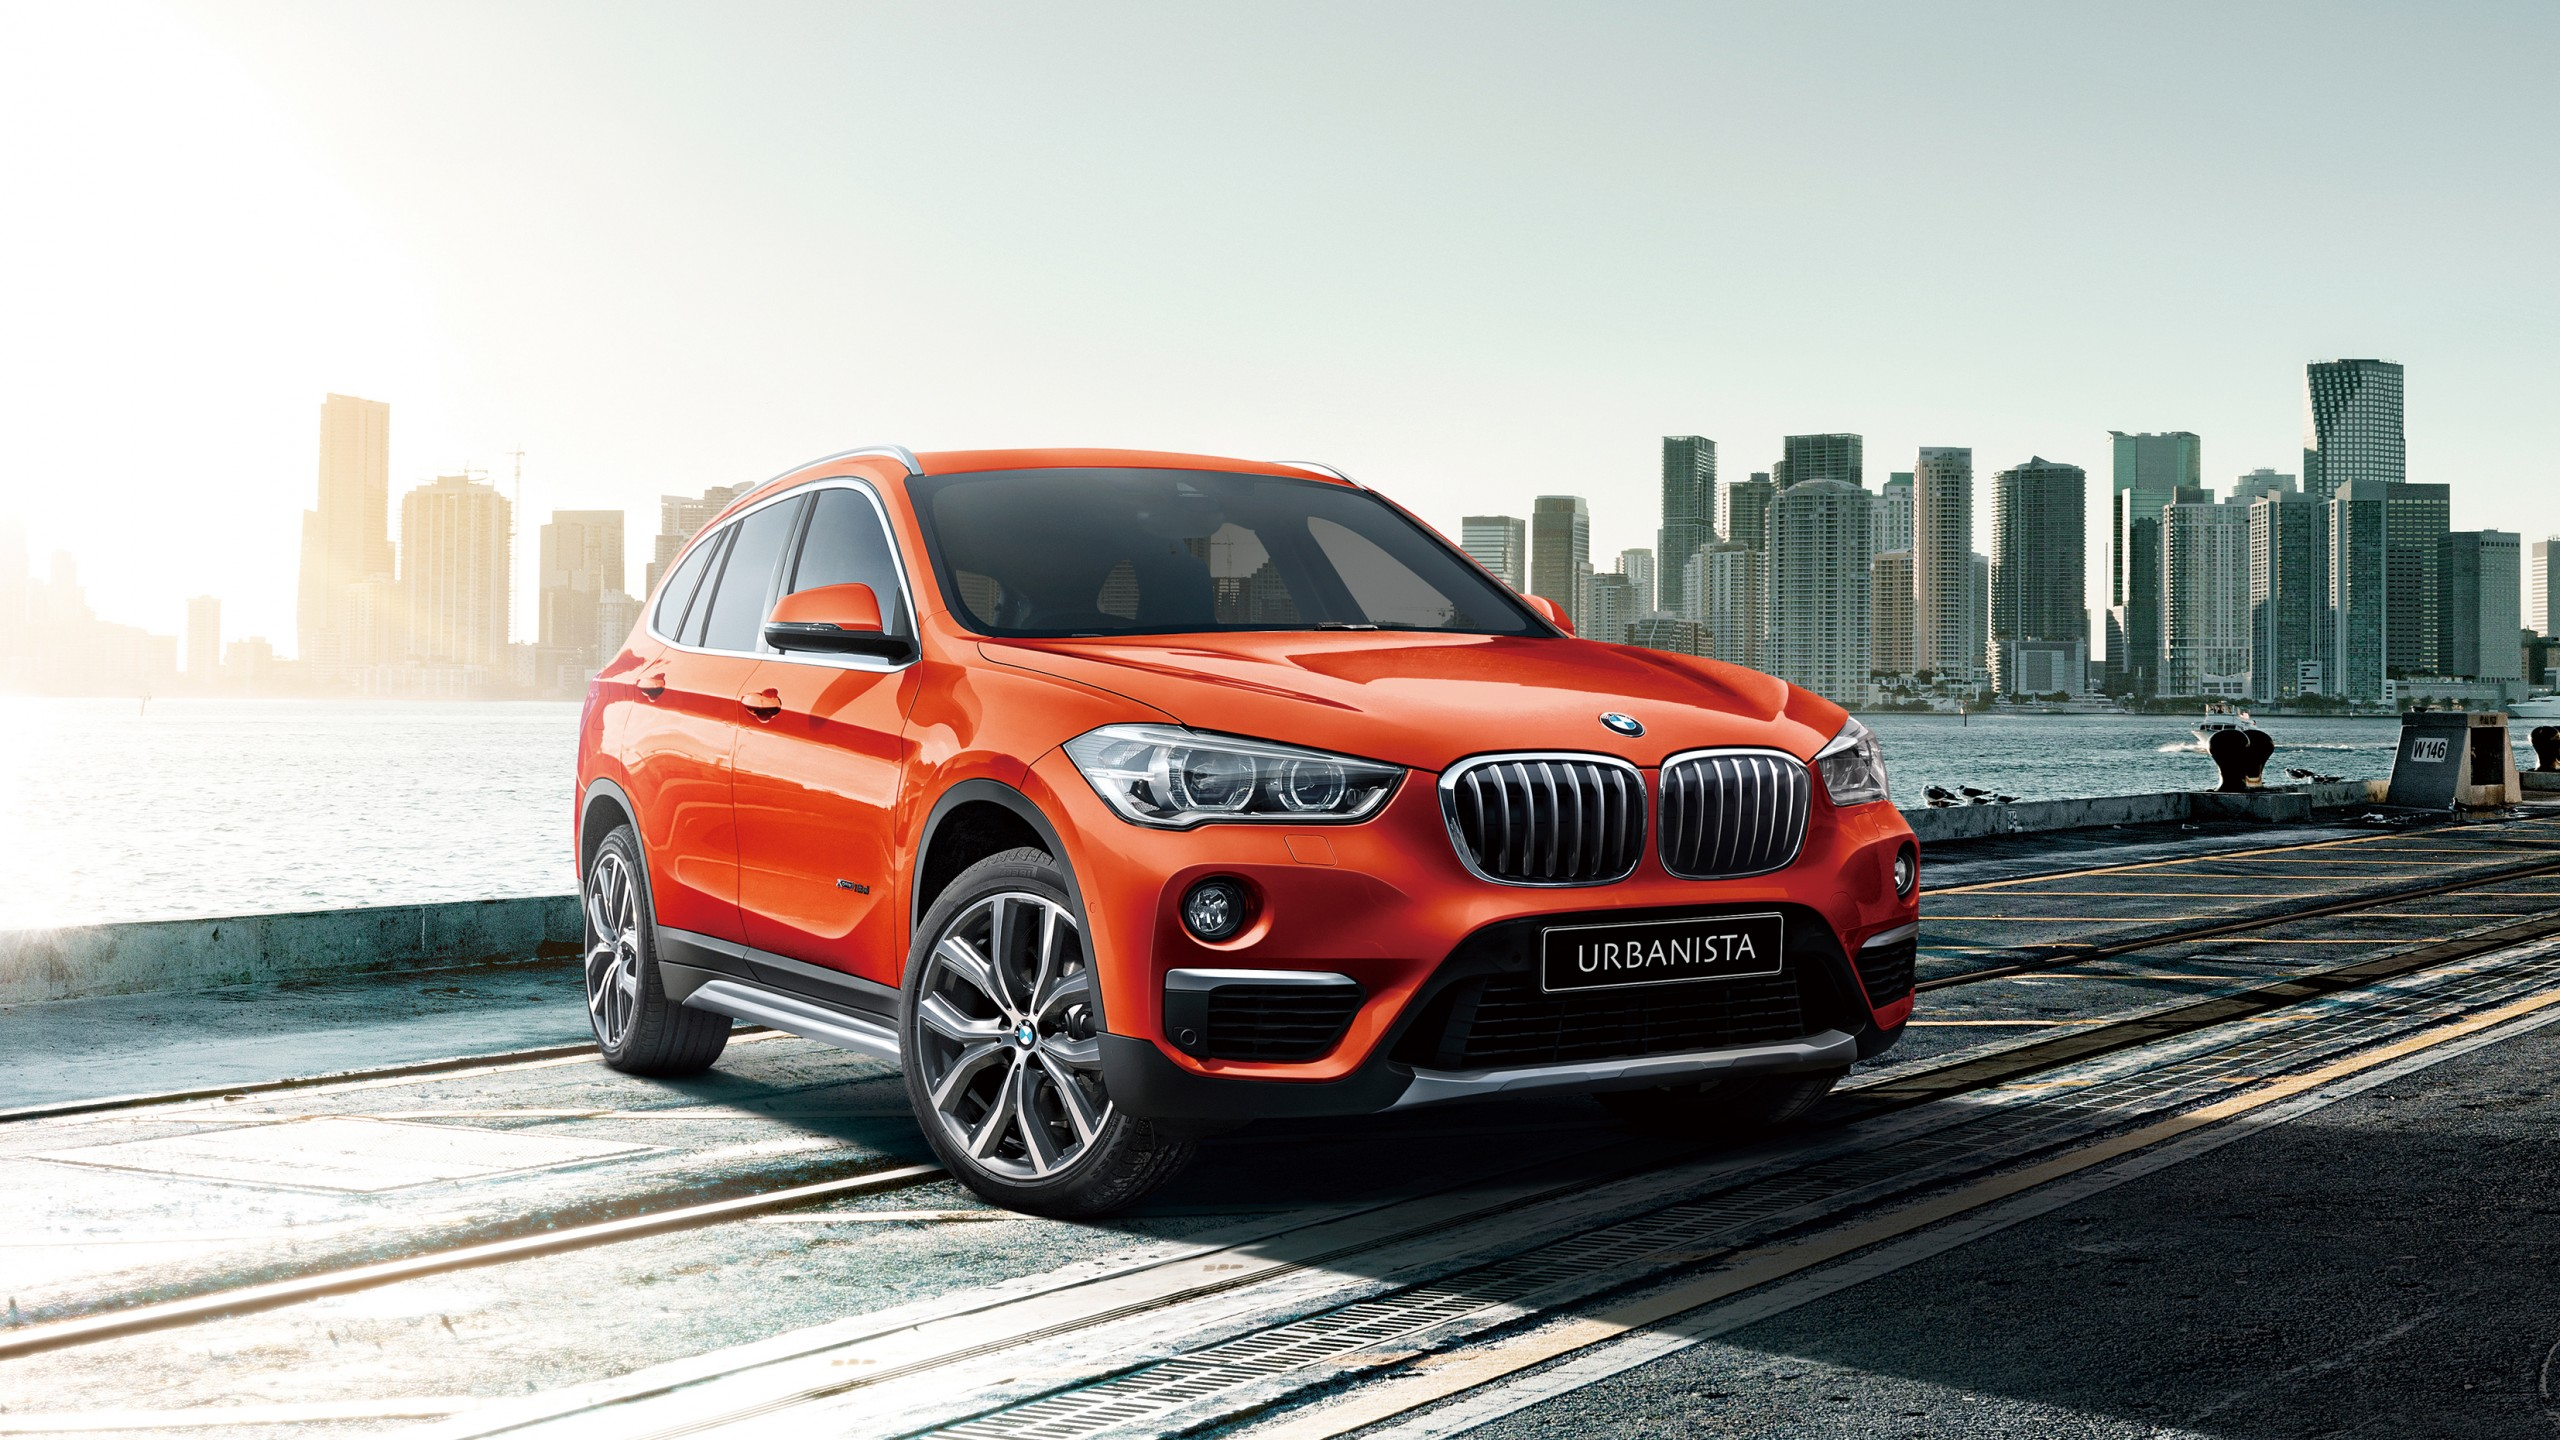 Car Hdr Wallpaper 2018 Bmw X1 Xdrive18d Urbanista Wallpaper Hd Car